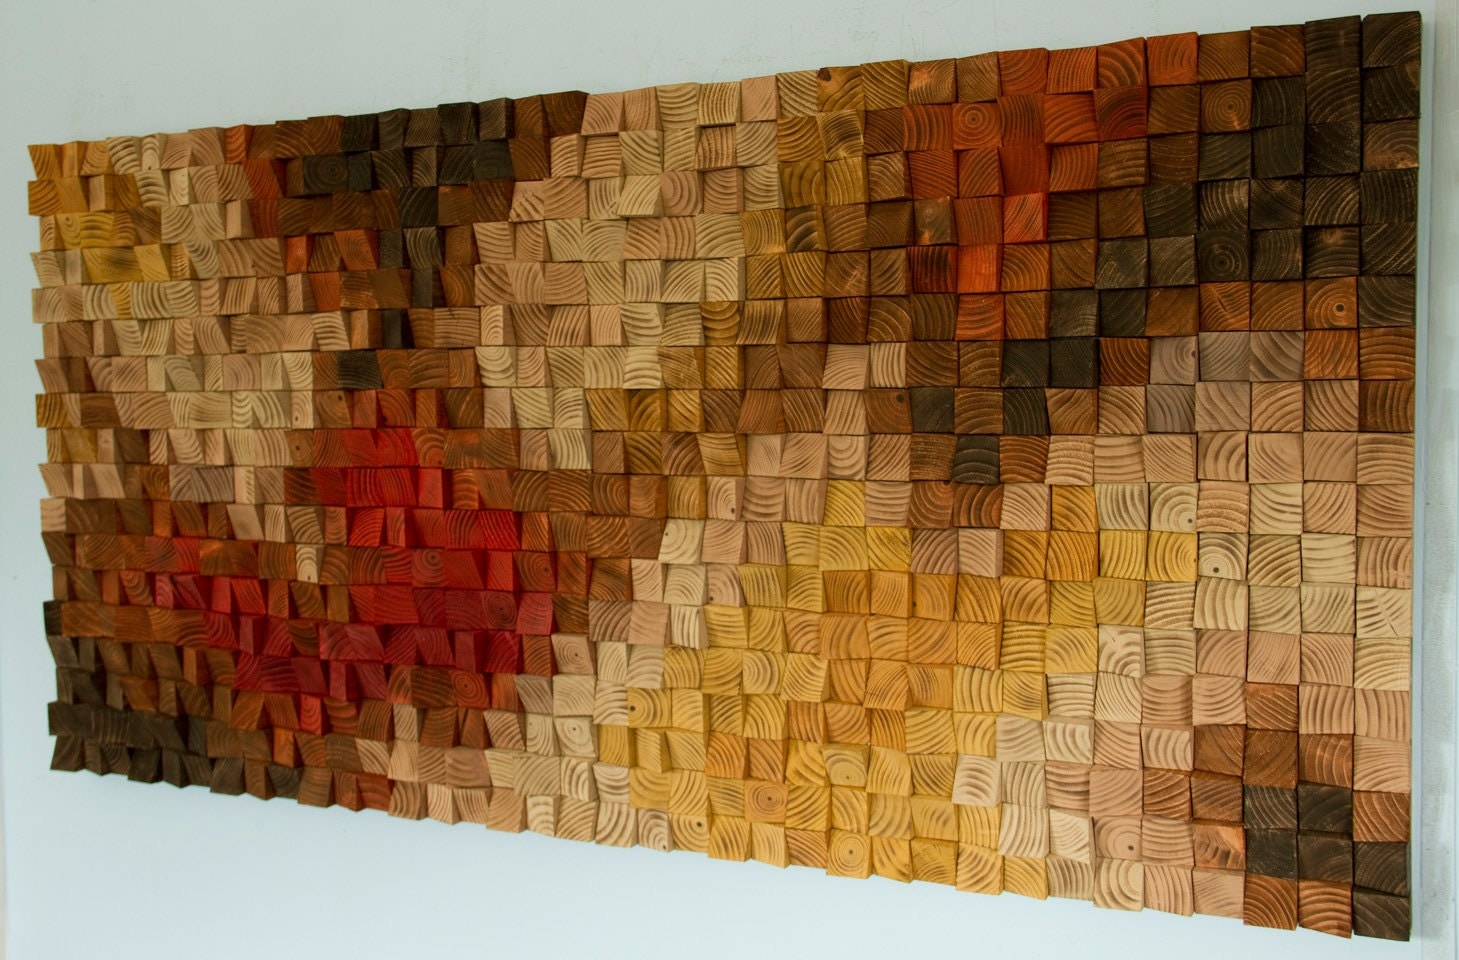 Large Wooden Wall Art large rustic wood wall art, wood wall sculpture, abstract painting